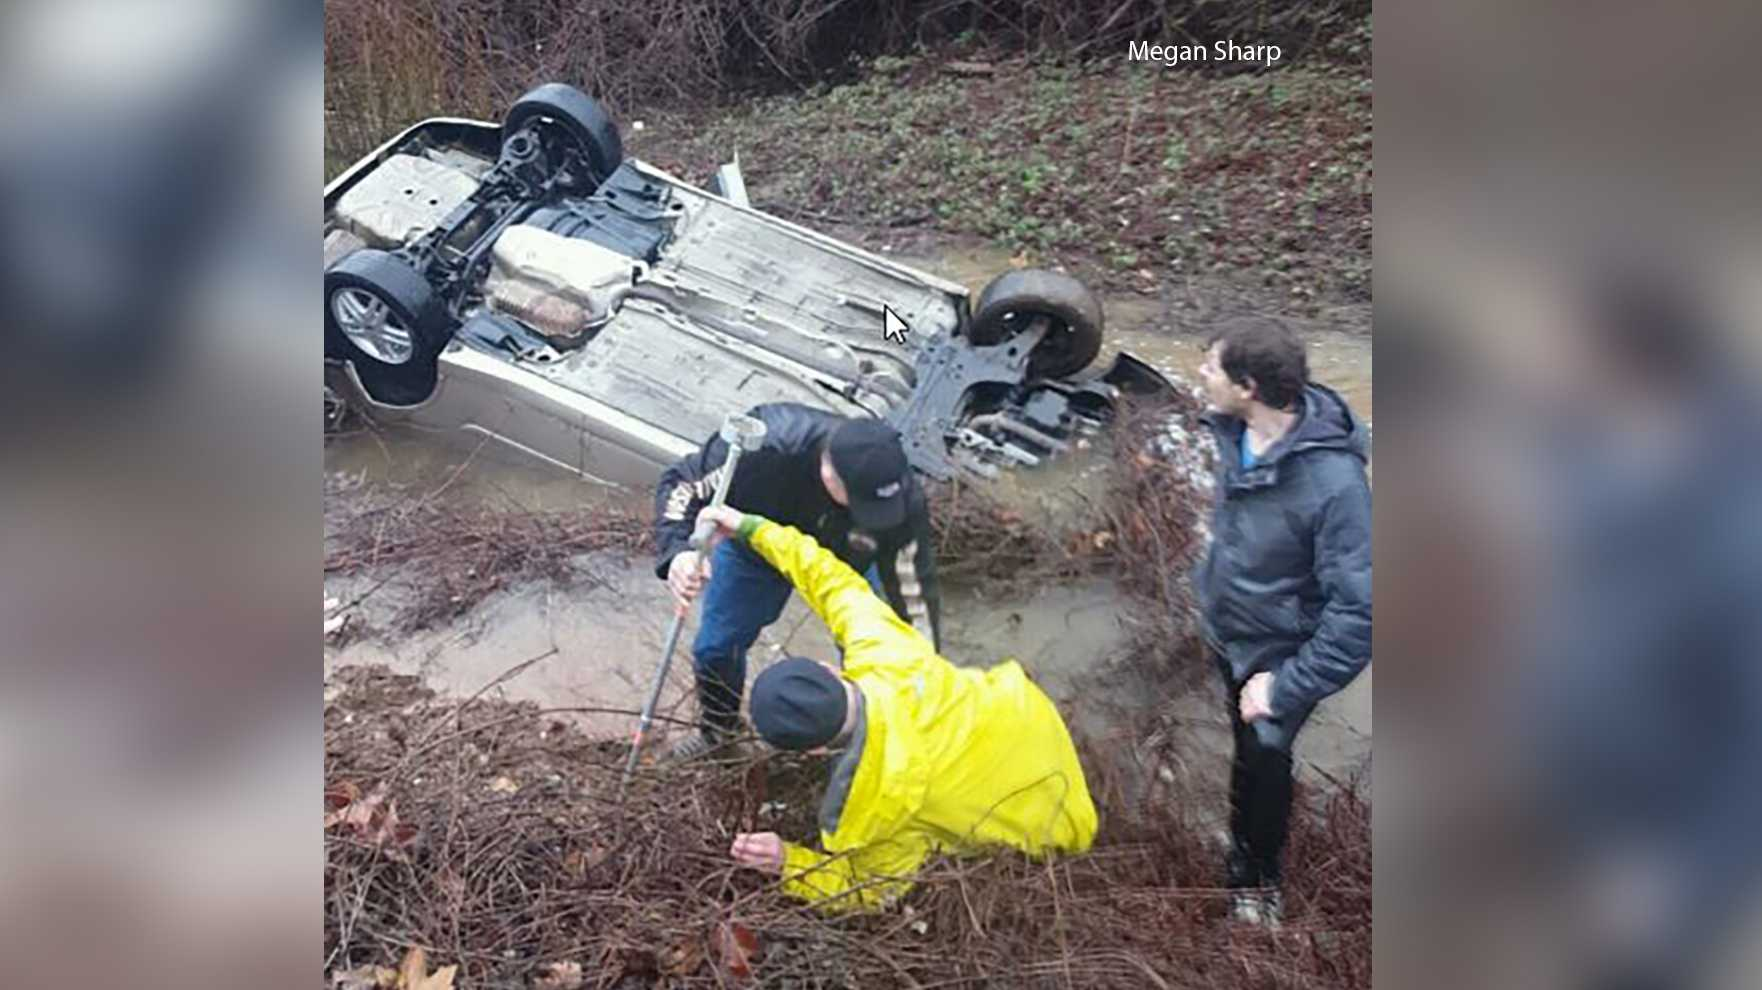 12-year-old girl, others rescued from submerged vehicle  in Placer County